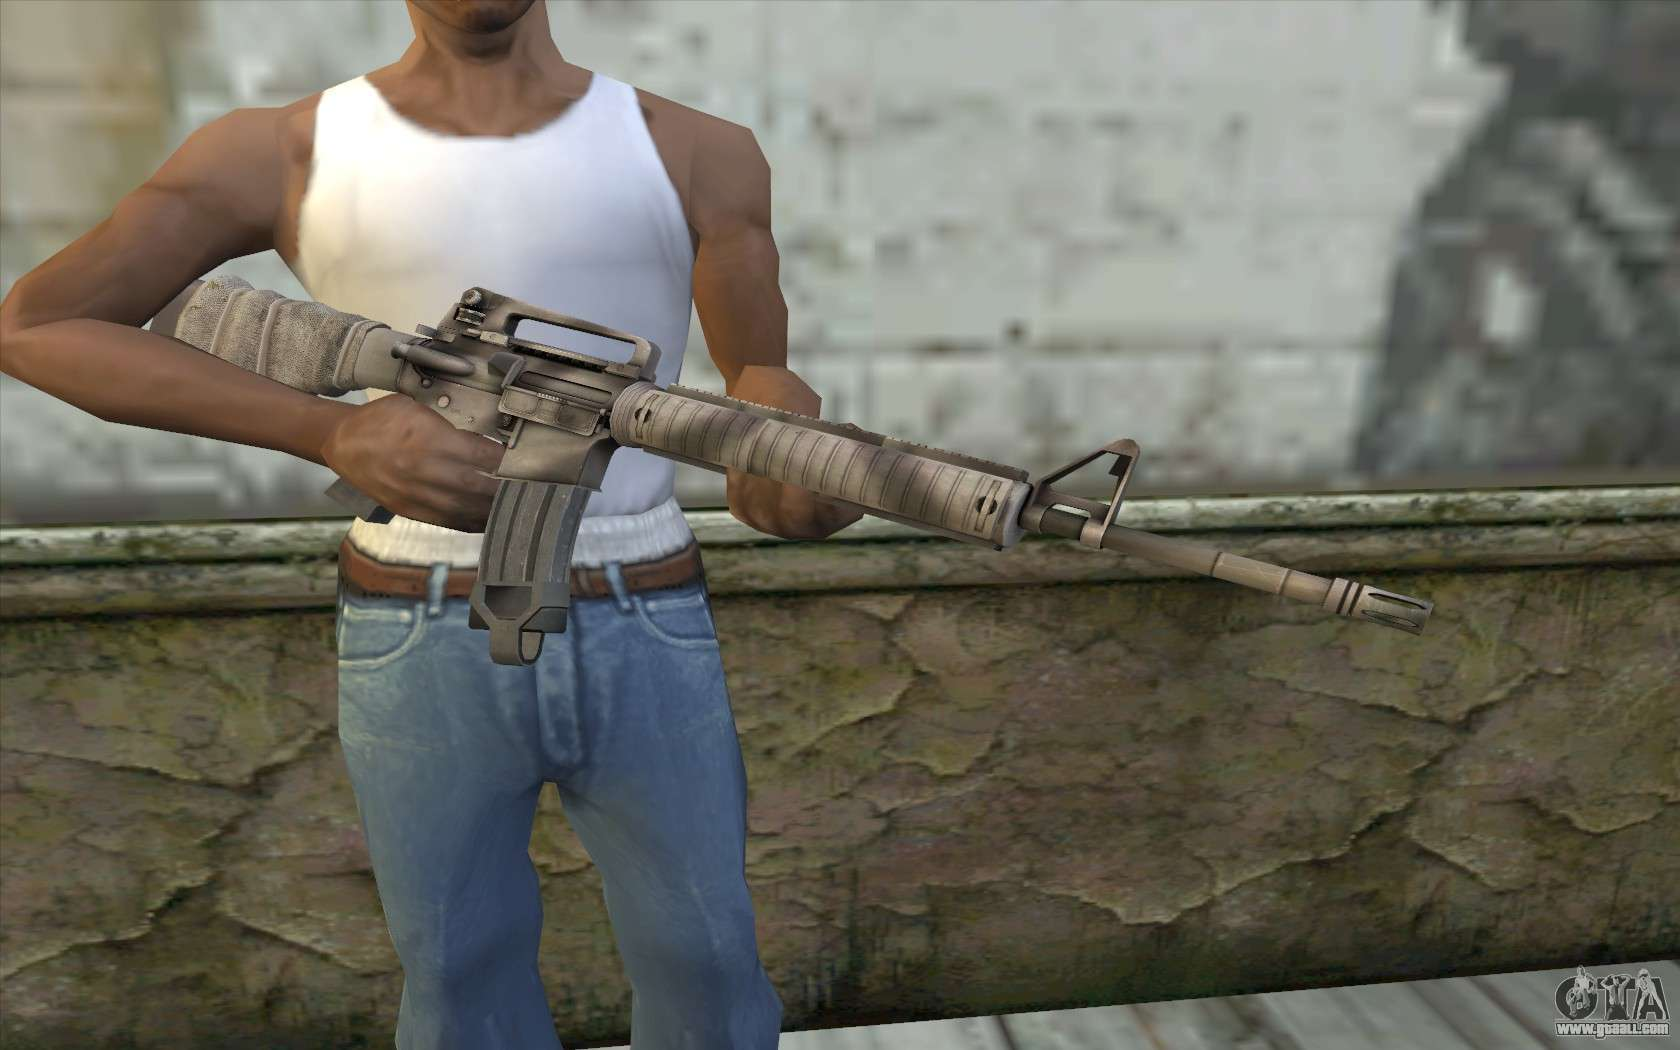 M16A4 from Battlefield 3 for GTA San Andreas M16a4 Bf3